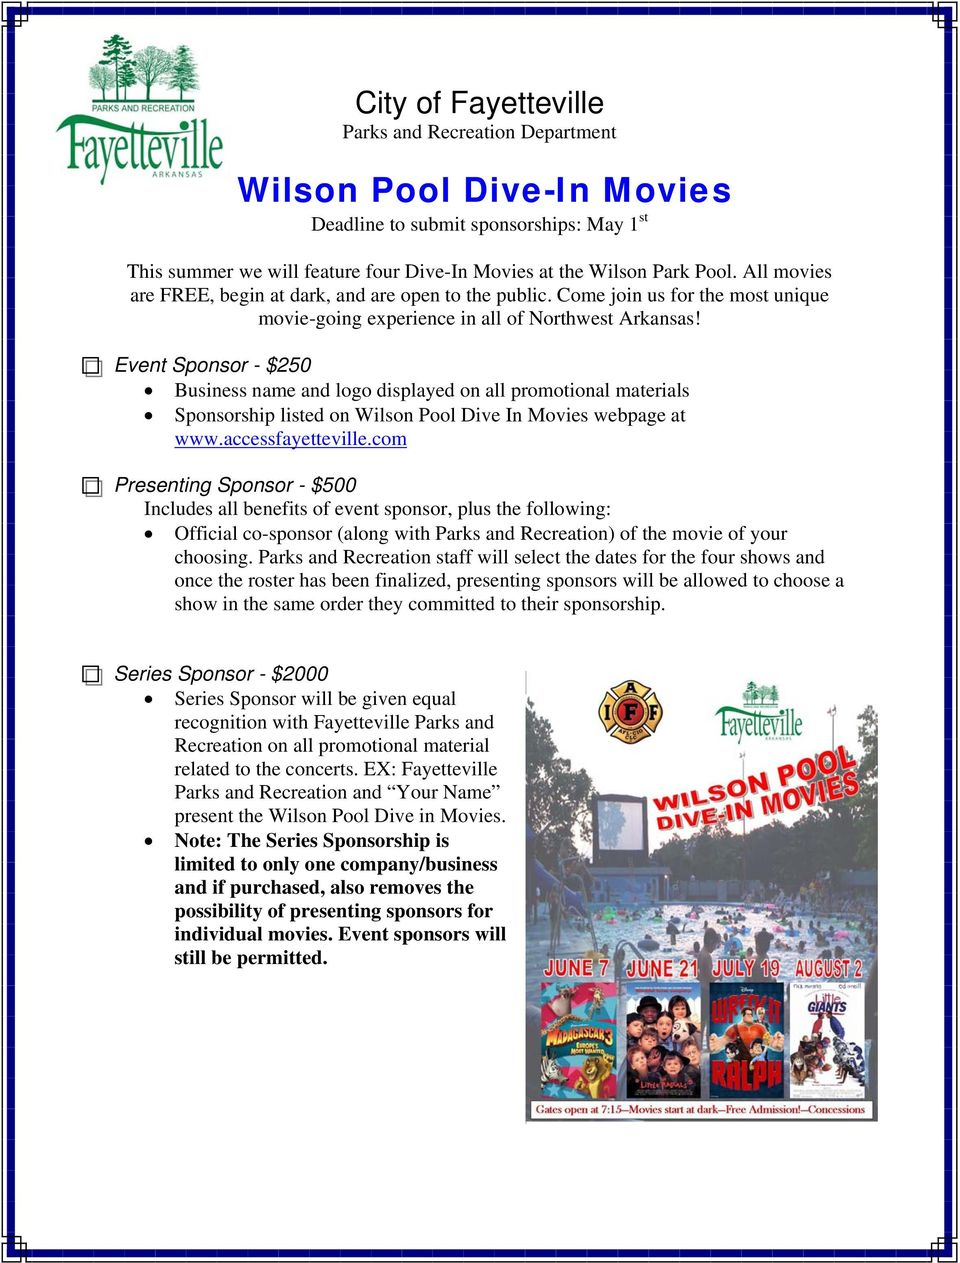 Event Sponsor - $250 Business name and logo displayed on all promotional materials Sponsorship listed on Wilson Pool Dive In Movies webpage at www.accessfayetteville.